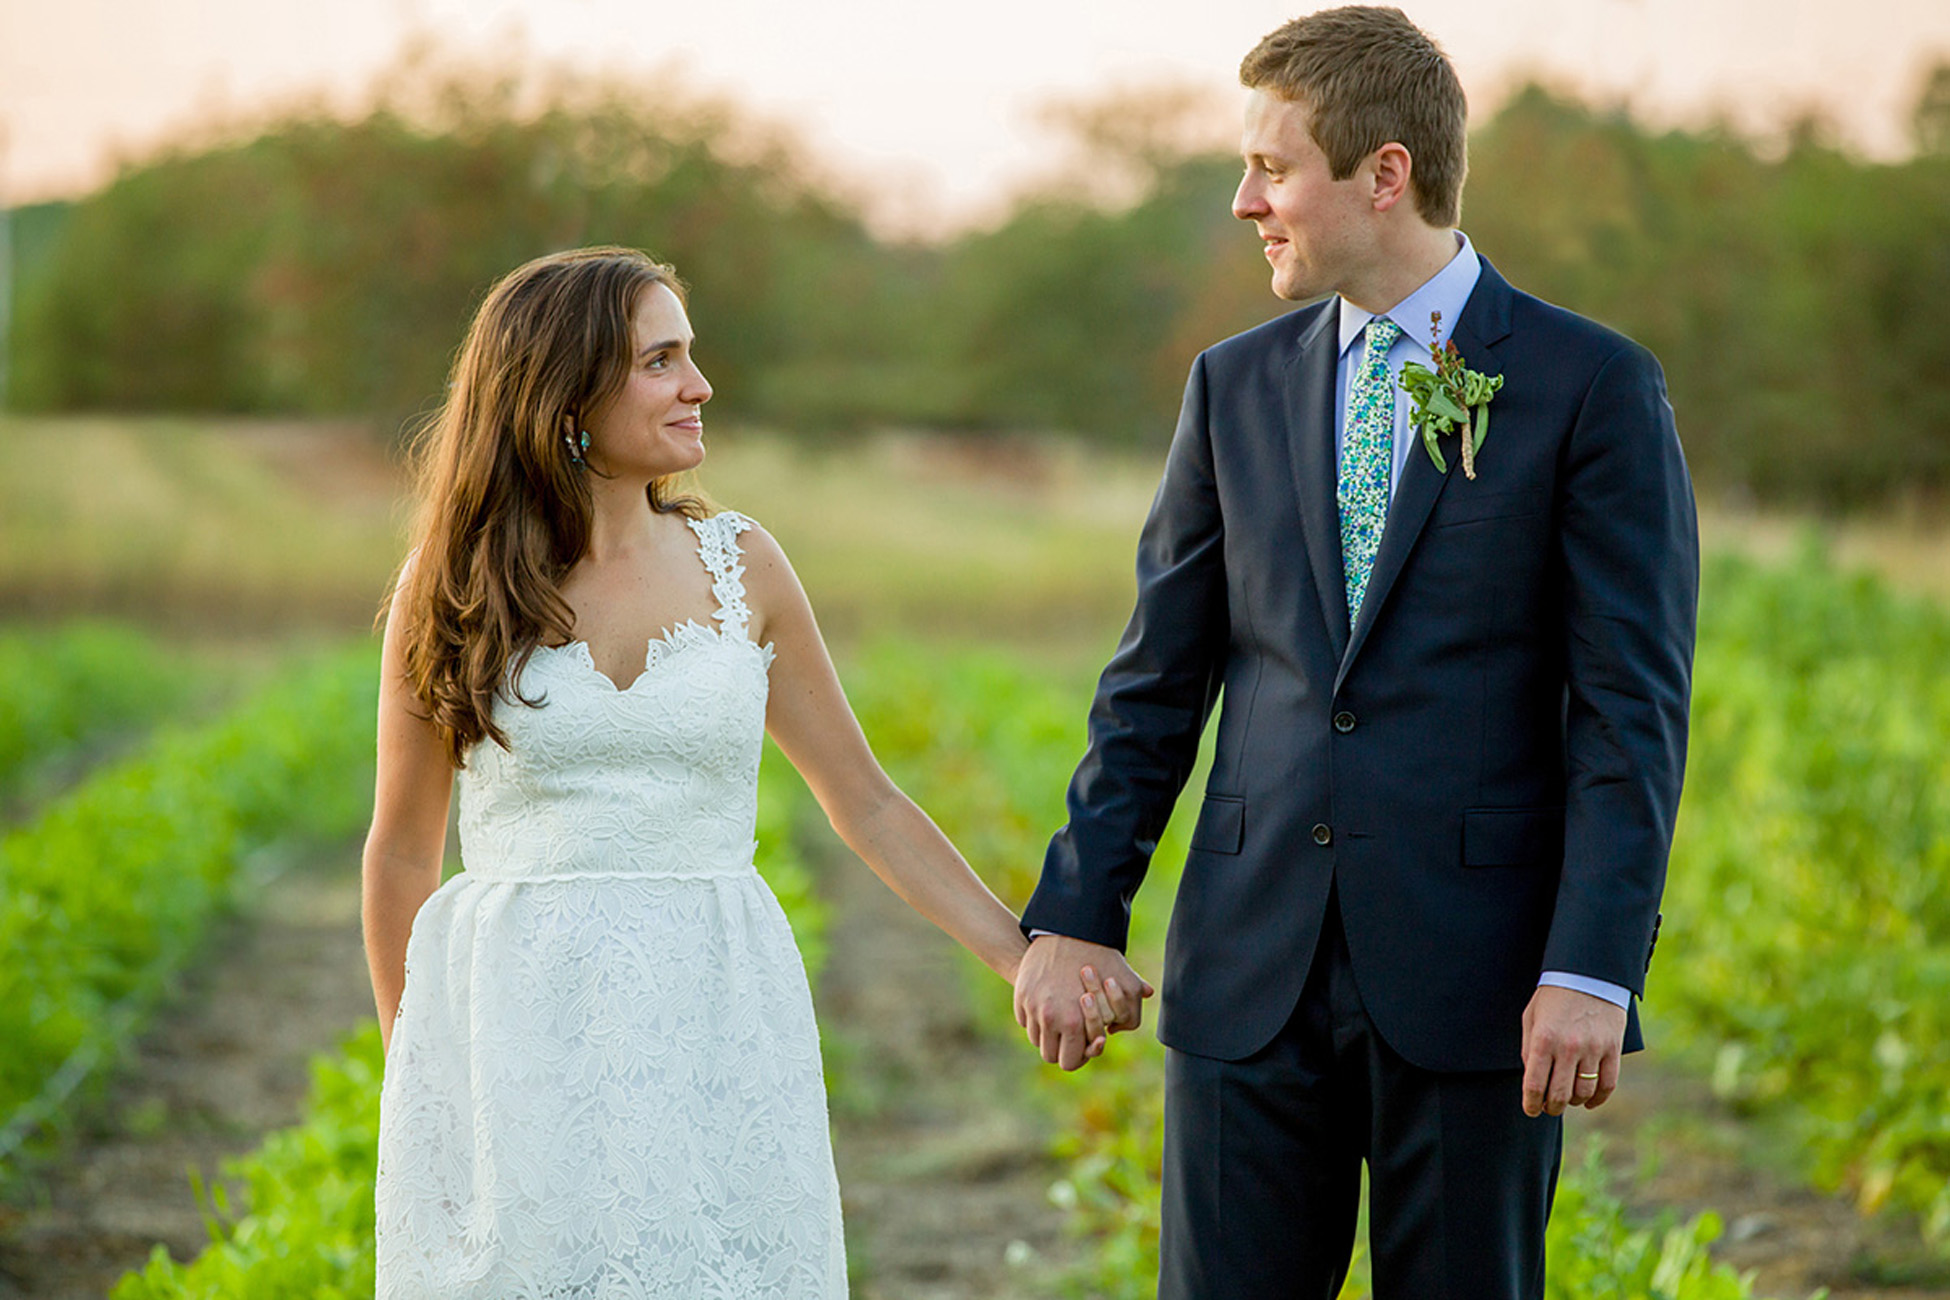 A Wedding at Cherry Basket Farm by Photographer Thomas Kachadurian